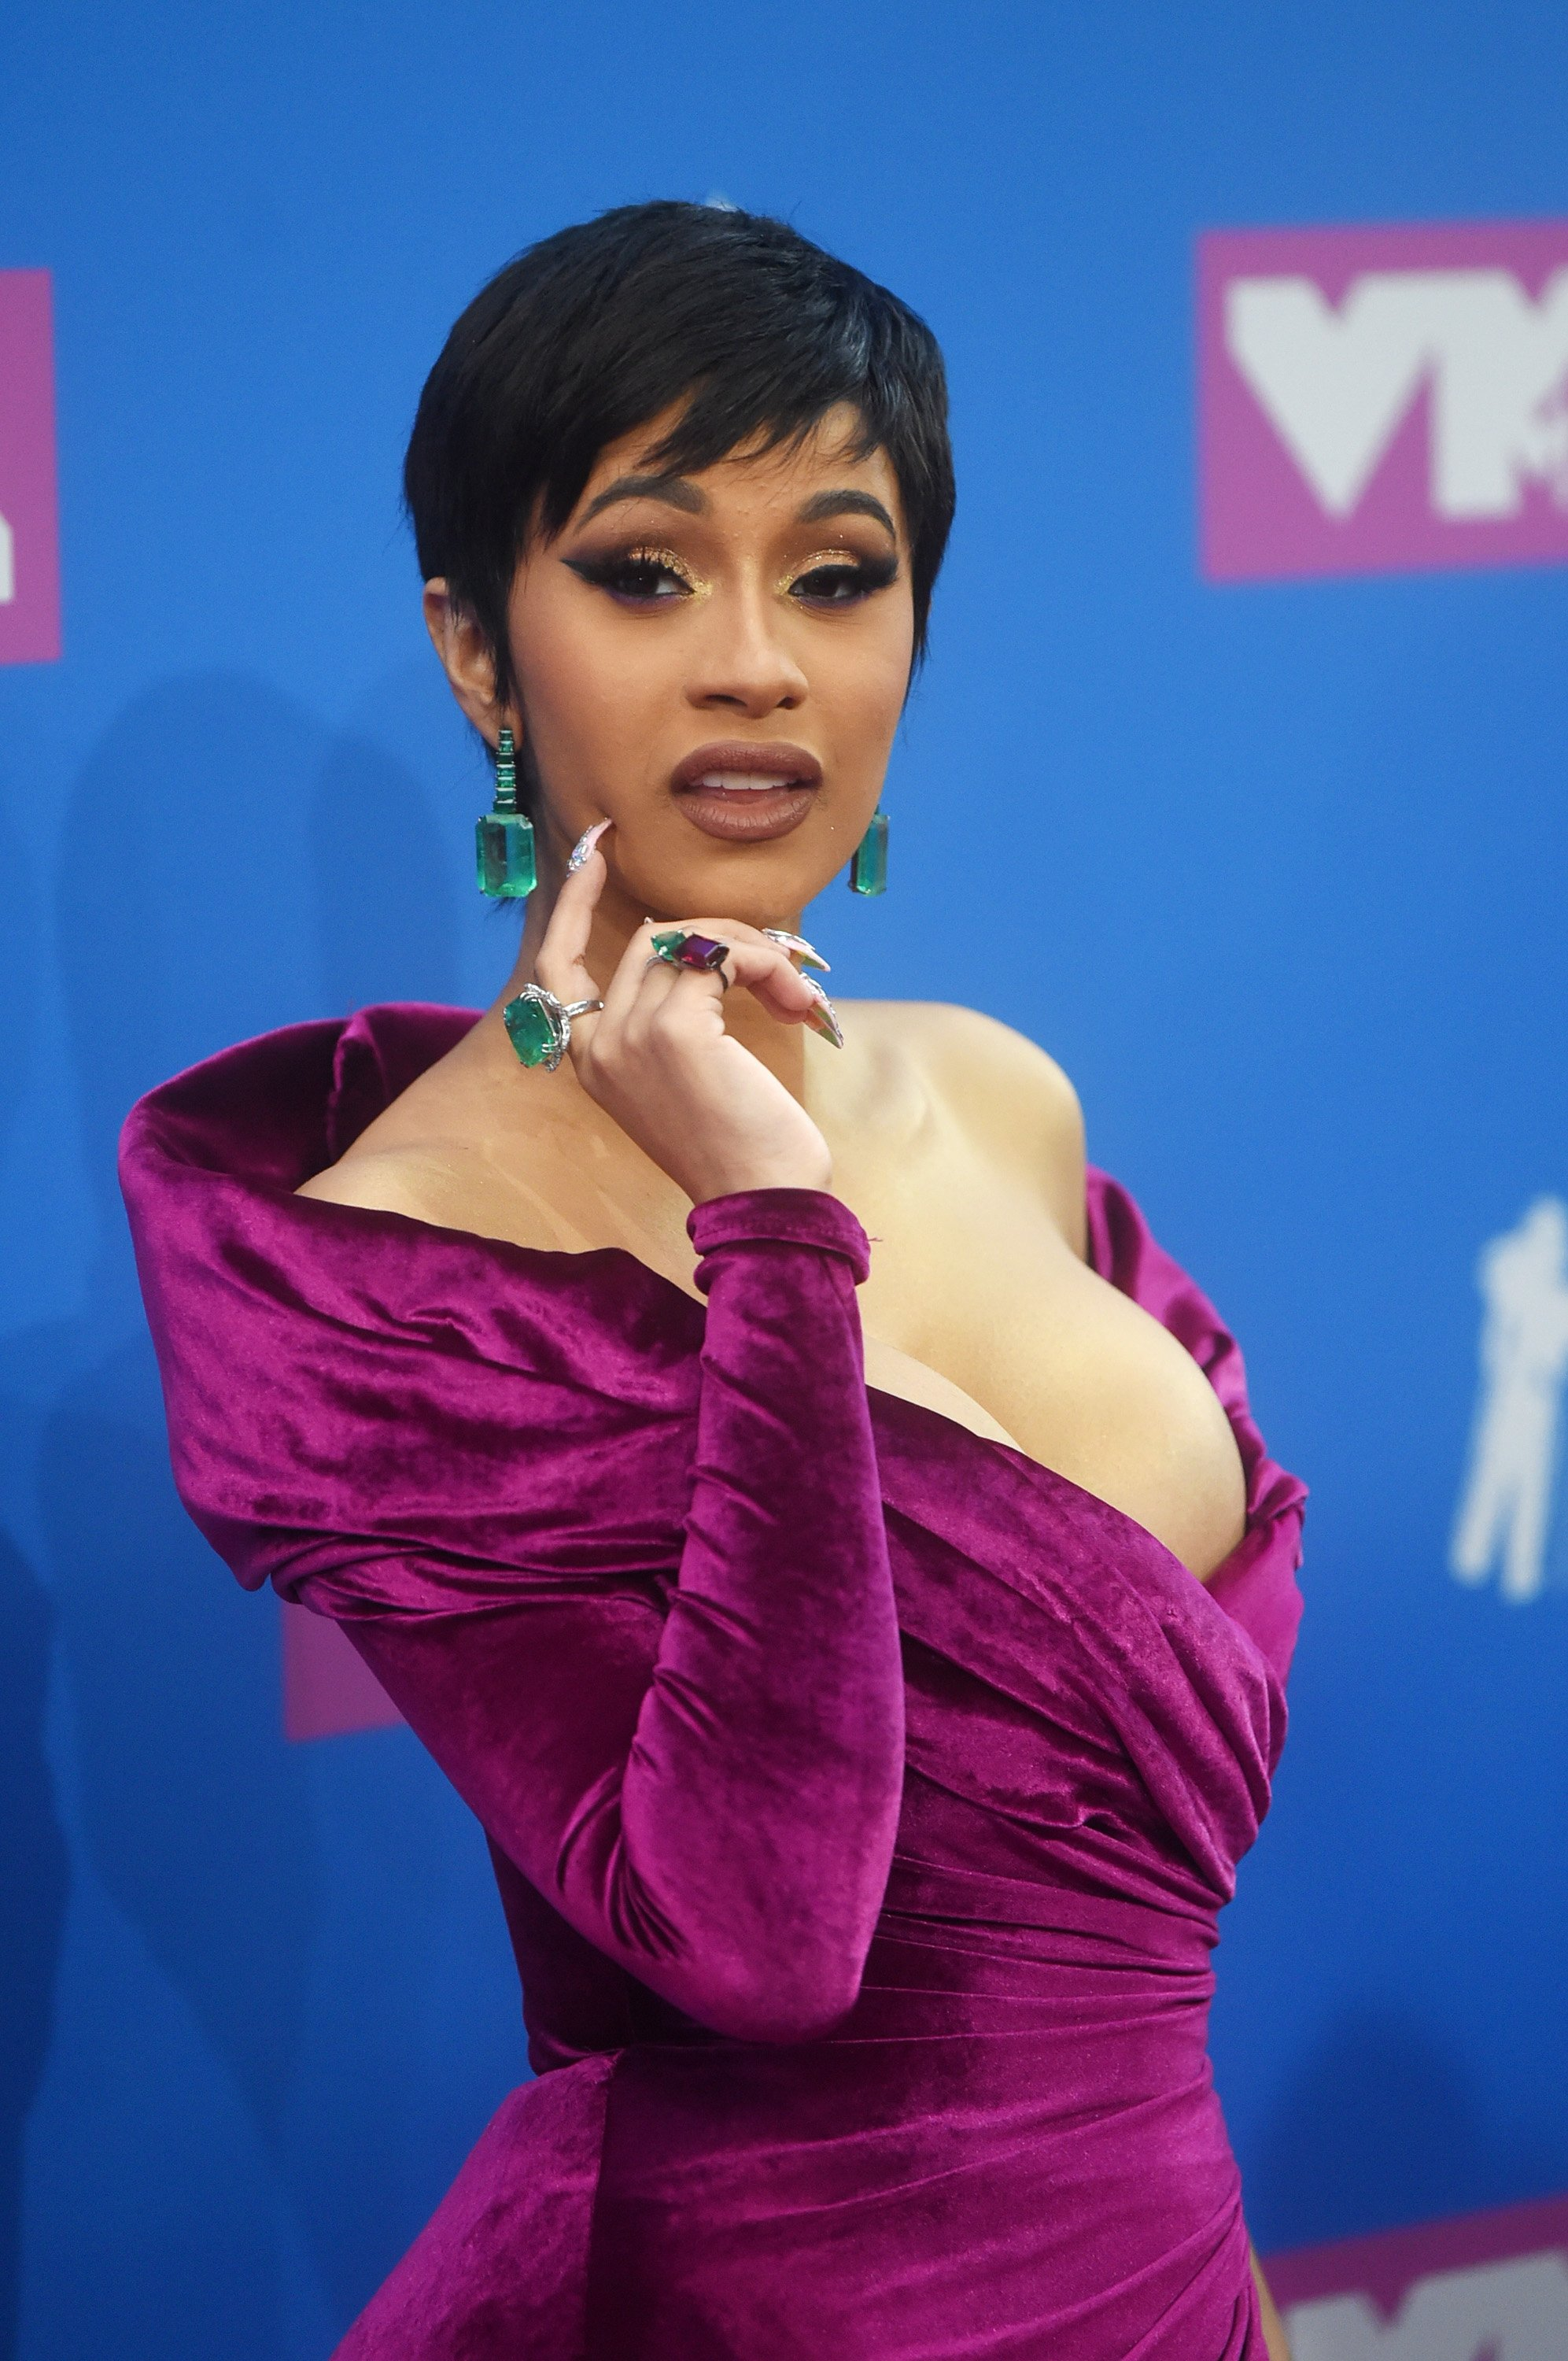 Cardi B at the 2018 MTV Video Music Awards in New York City on August 20, 2018. | Photo: Getty Images